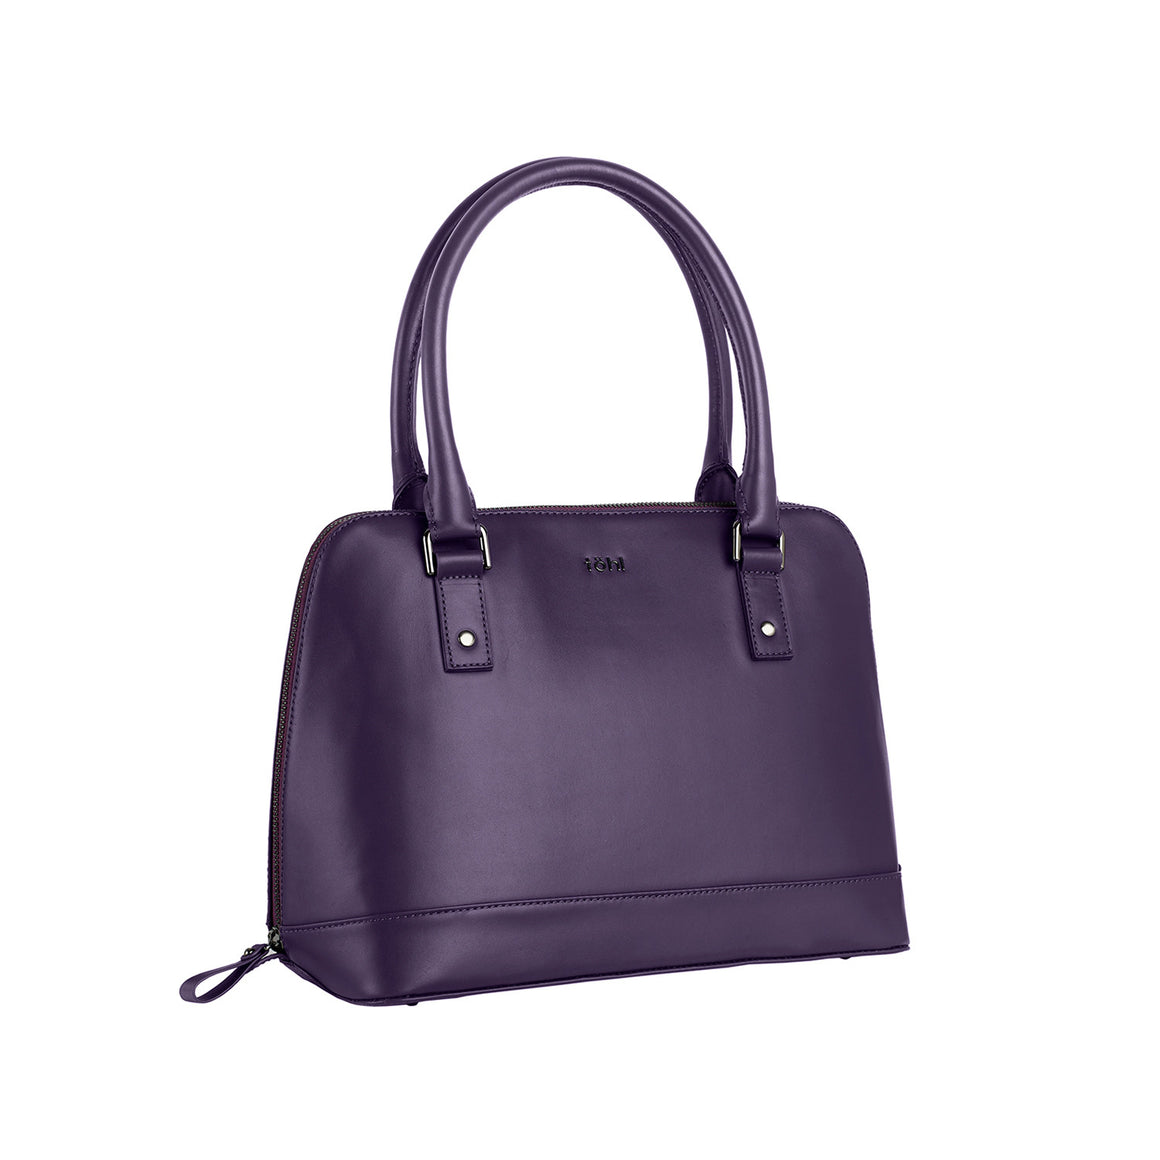 TT 0002 - TOHL RIDGE WOMEN'S SHOULDER BAG - AUBERGINE